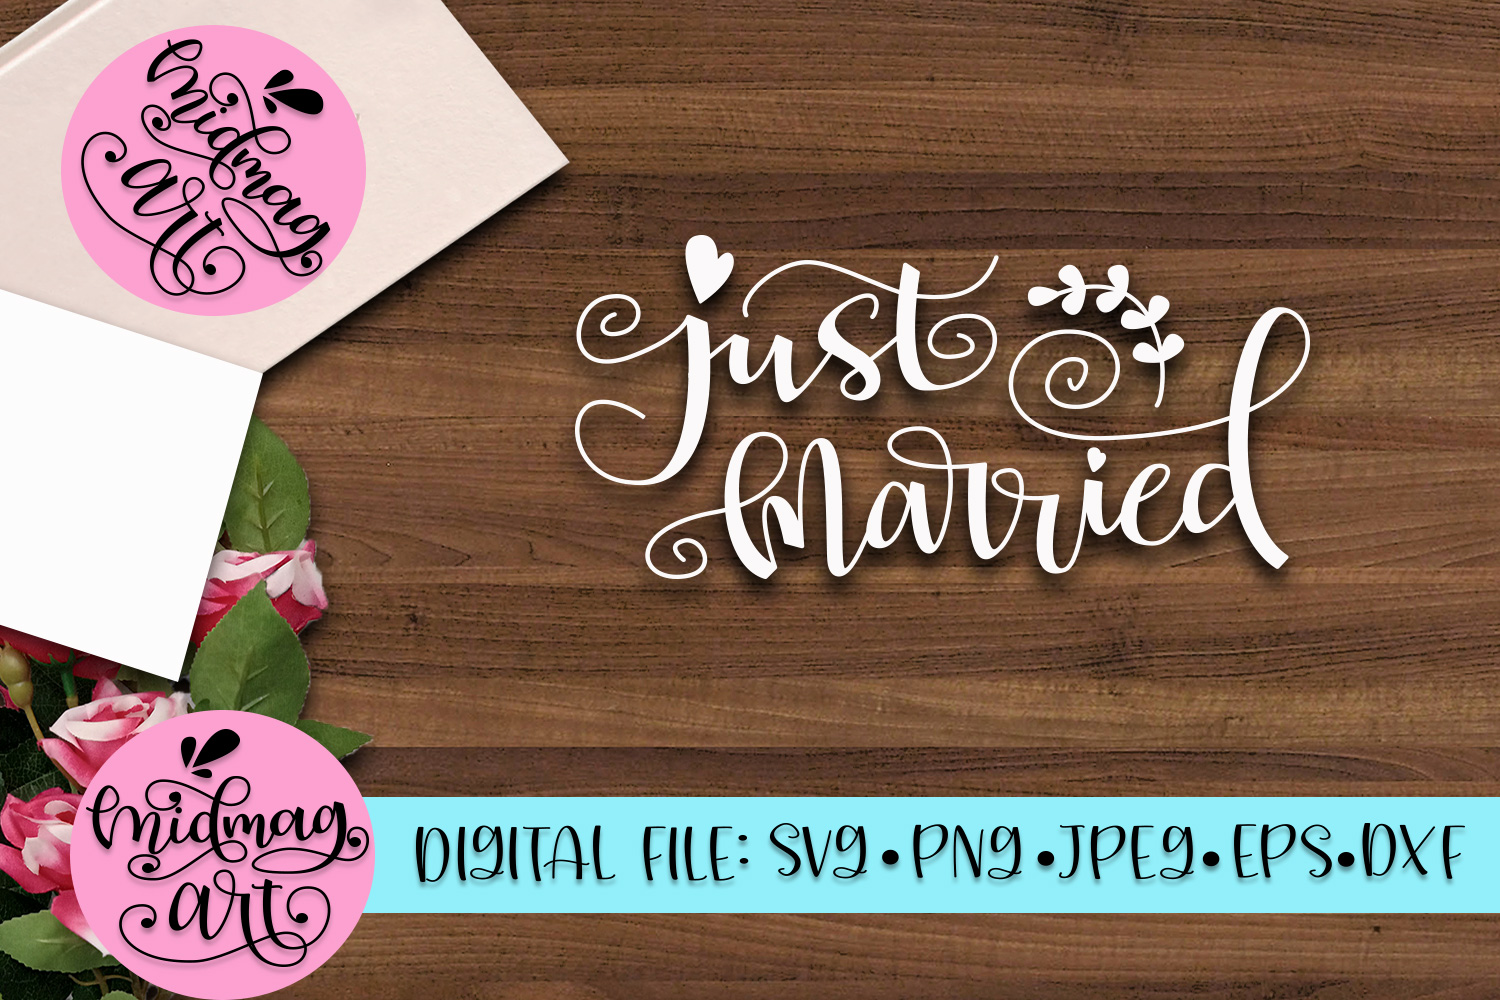 Just married svg, png, jpeg, eps and dxf example image 2